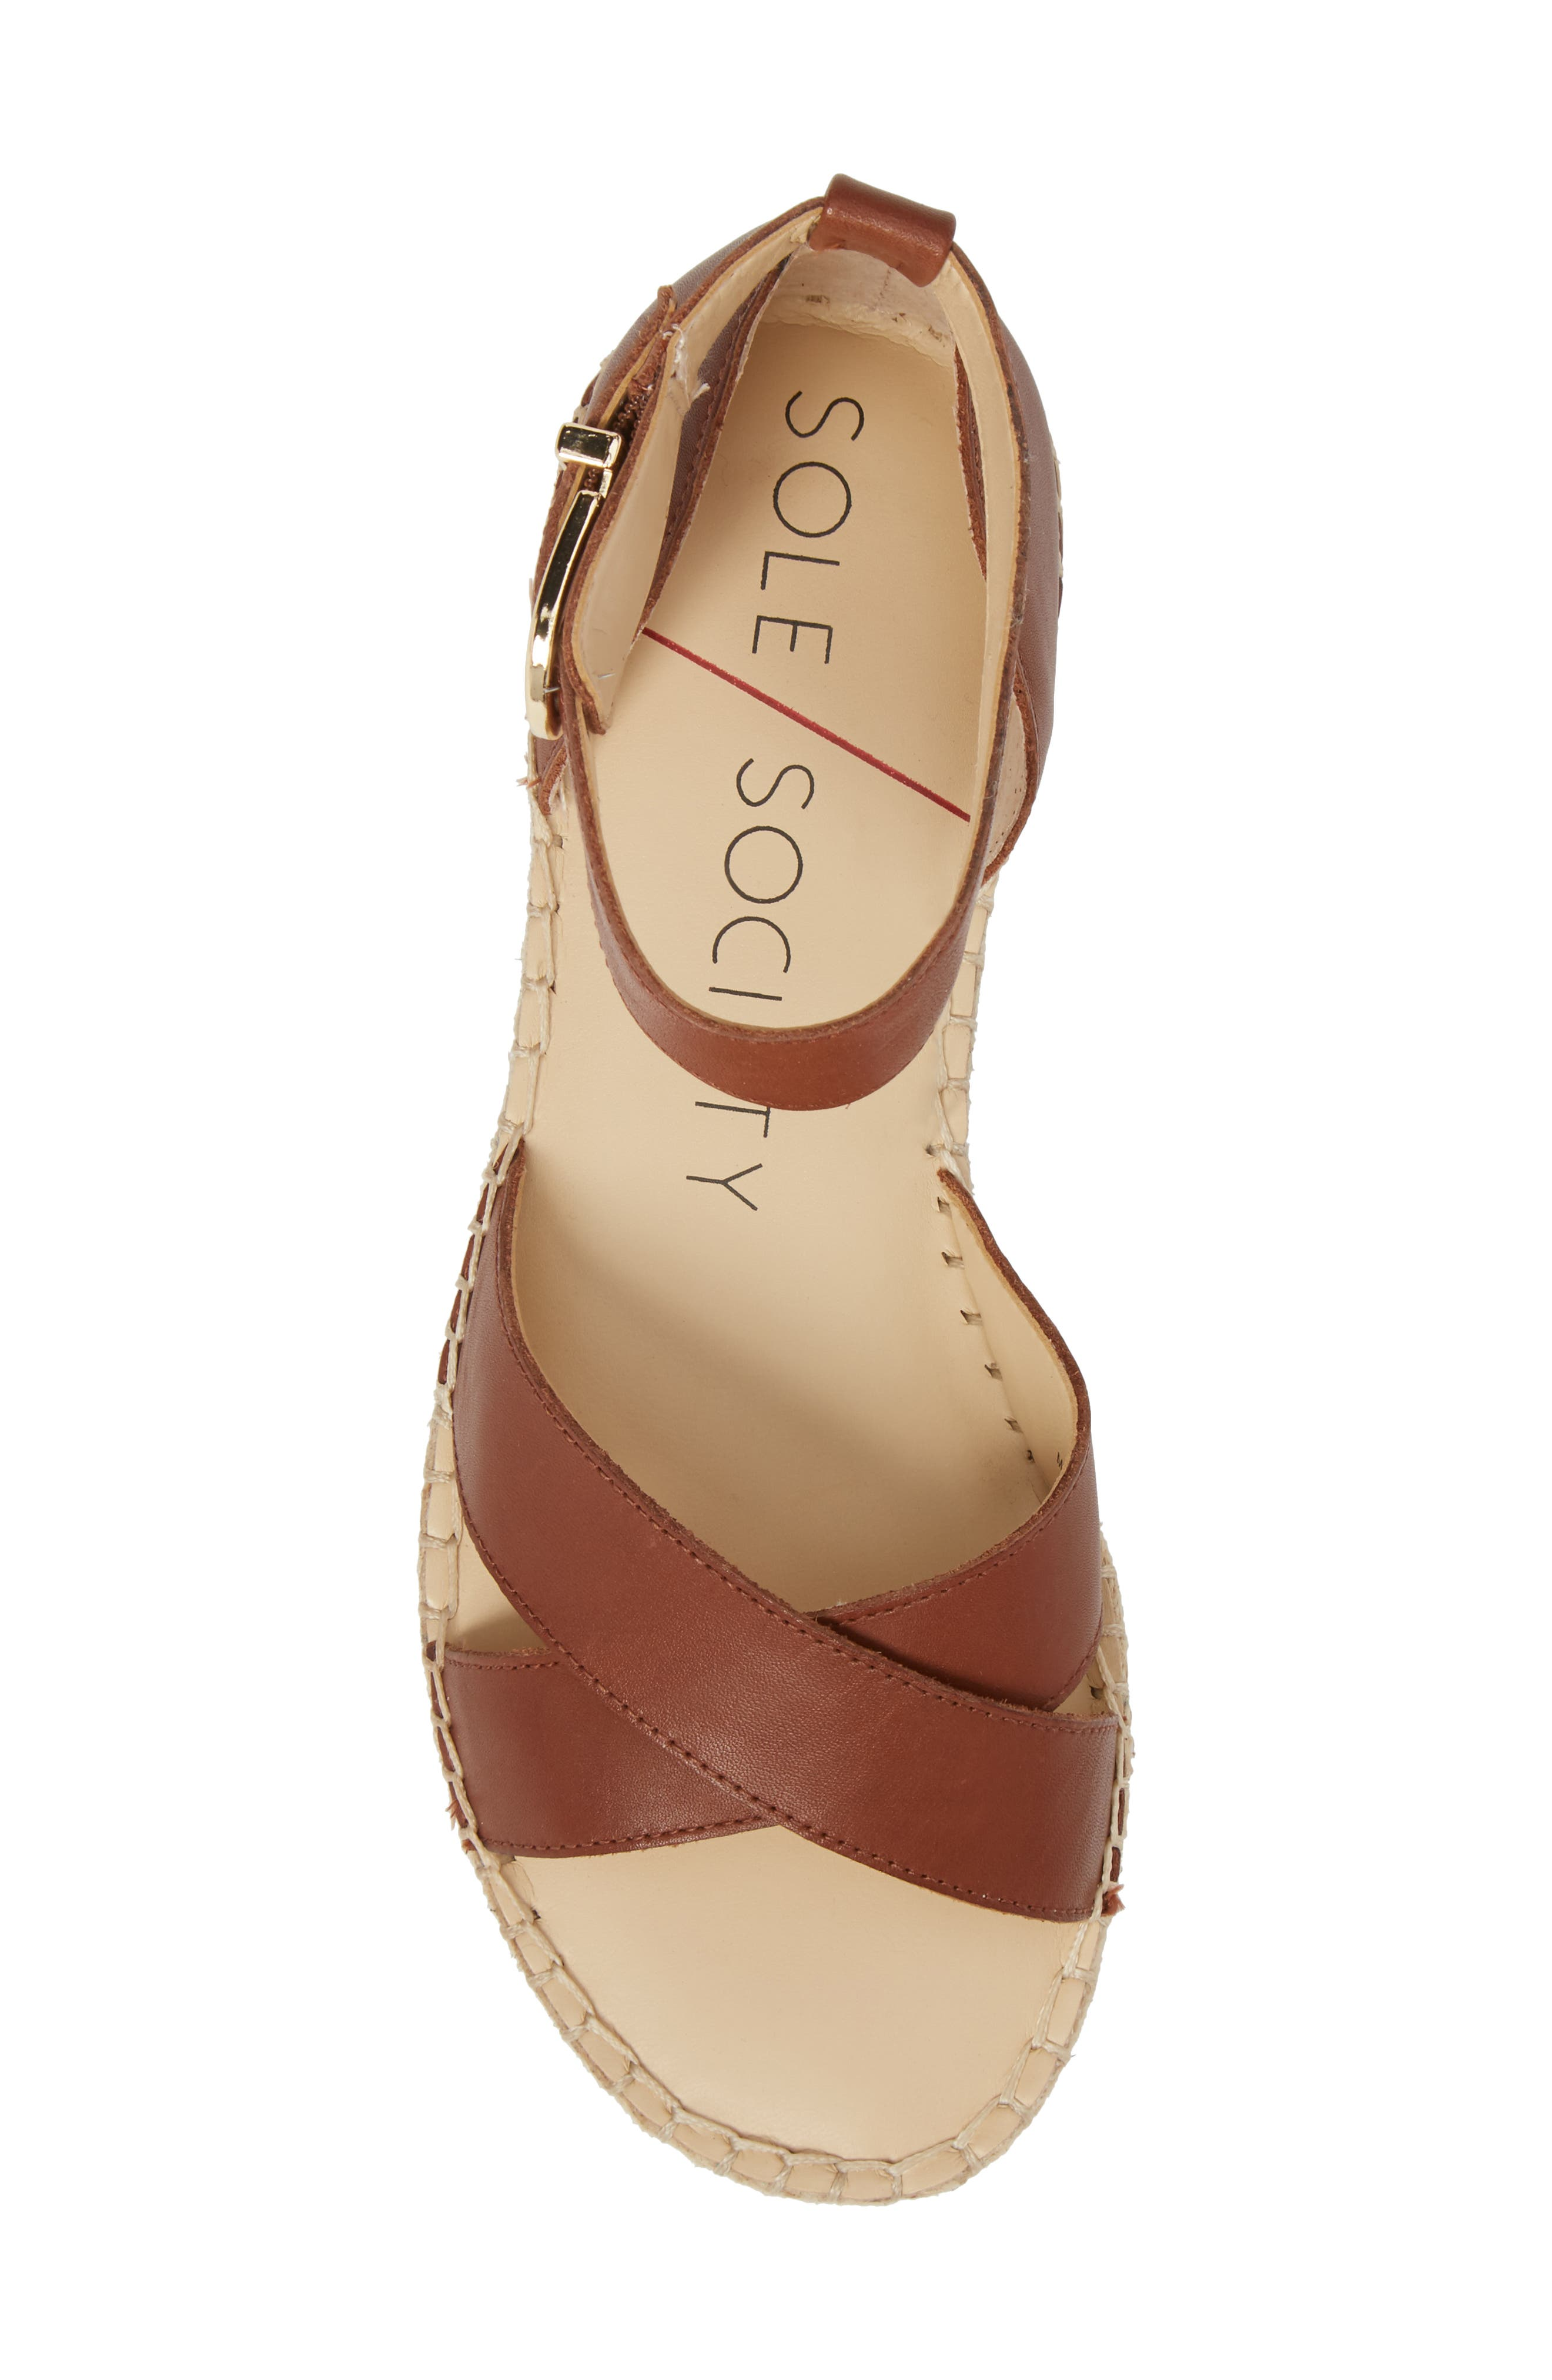 Saundra Espadrille Sandal,                             Alternate thumbnail 19, color,